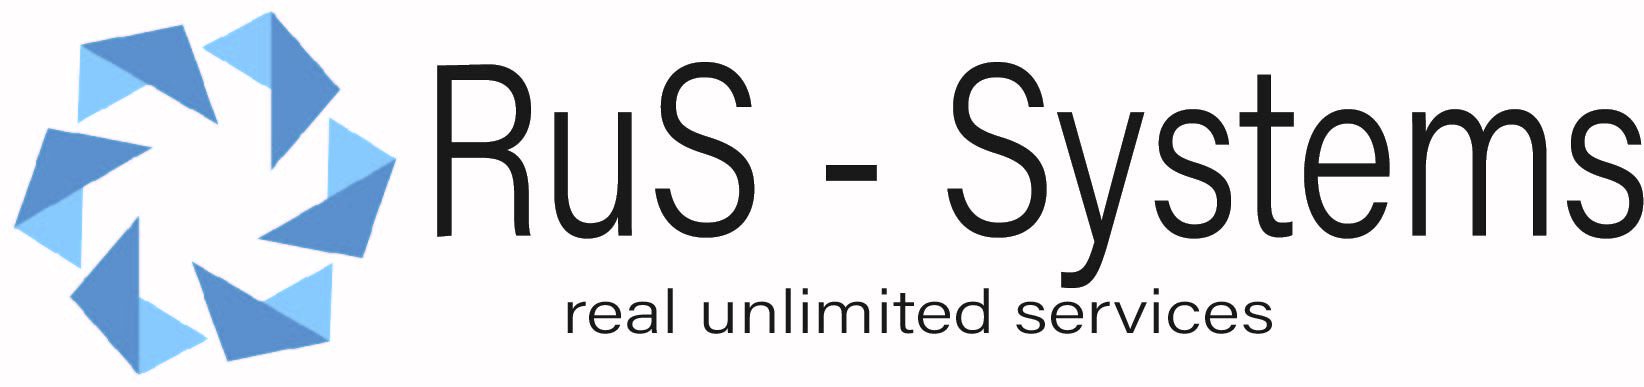 rus-systems.info